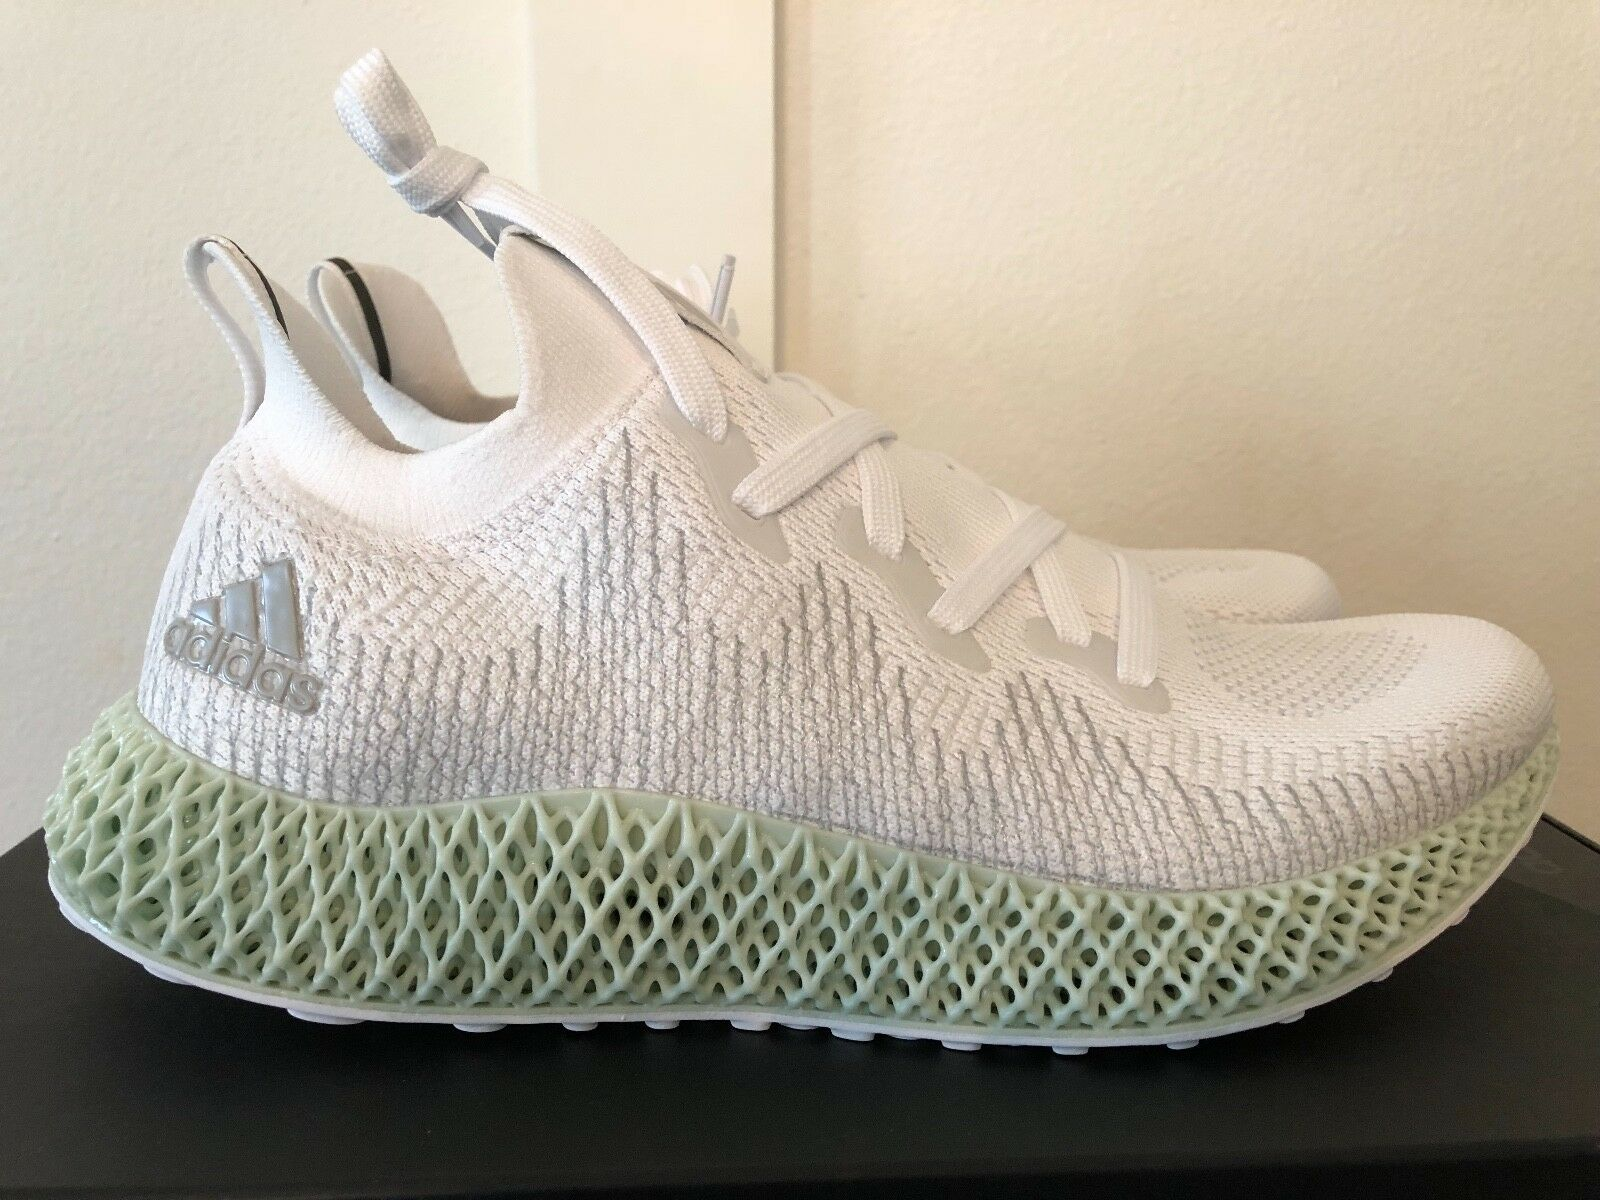 NEW Adidas Alphaedge Futurecraft 4D Ash Green Mens US 9   FREE SHIPPING